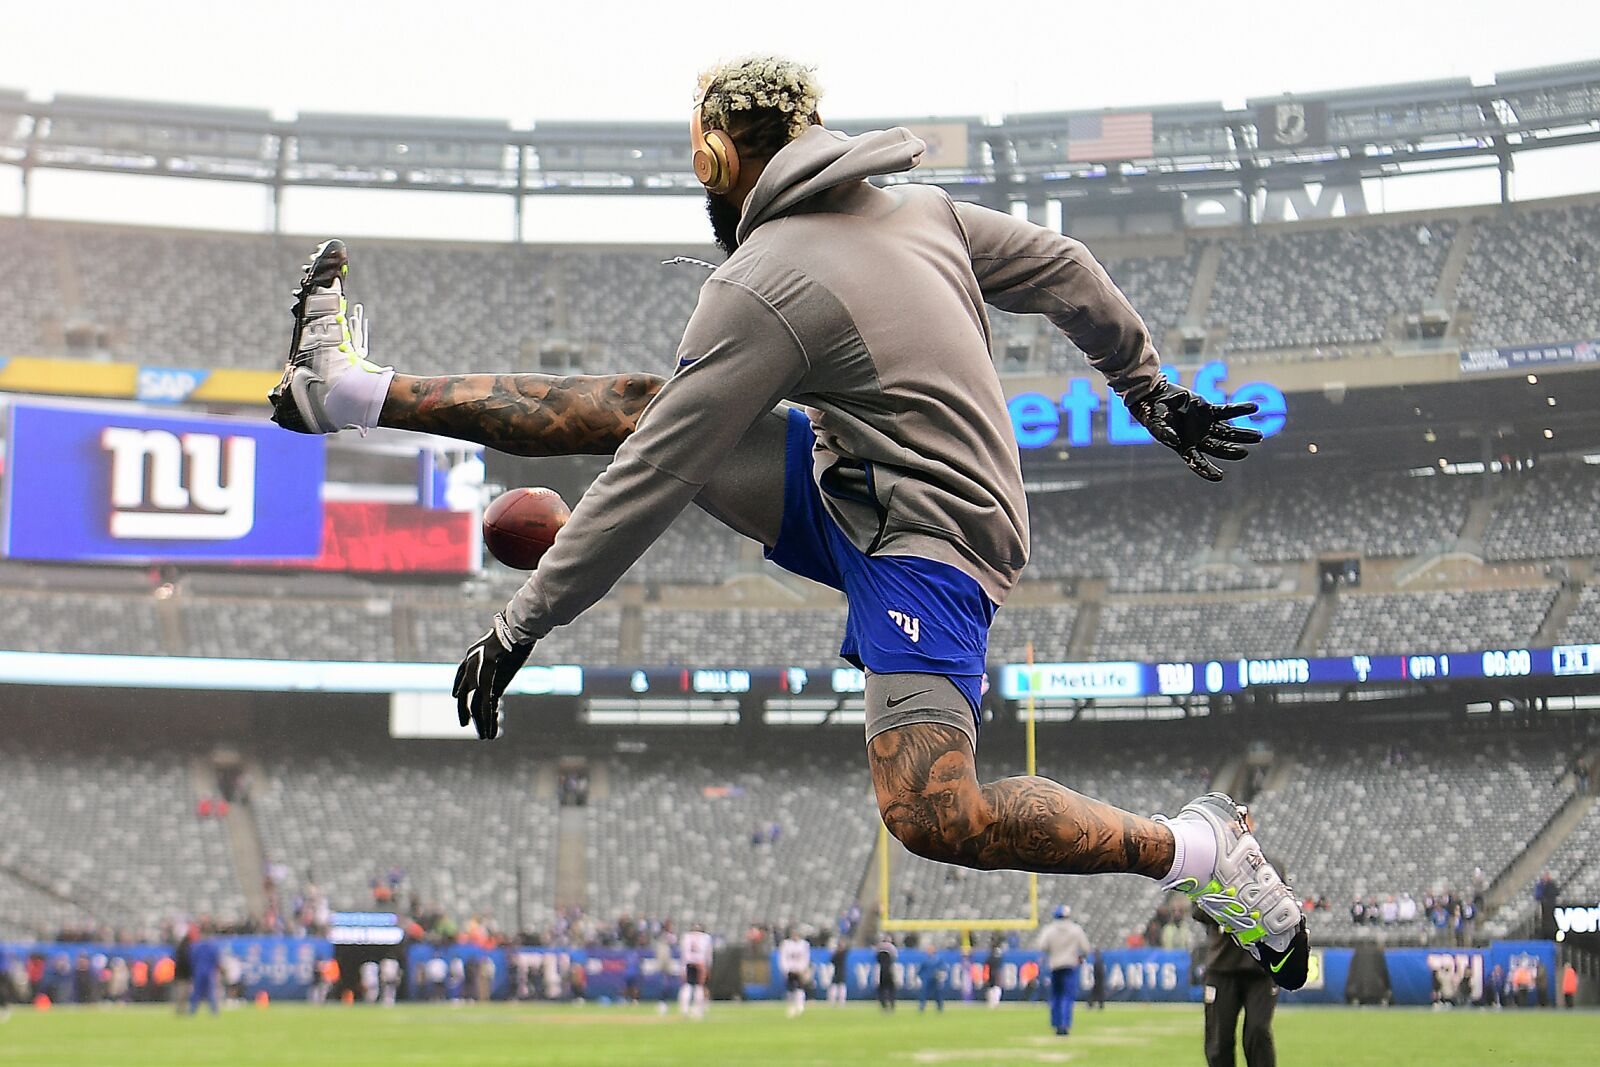 New York Giants: This is why Odell Beckham was traded